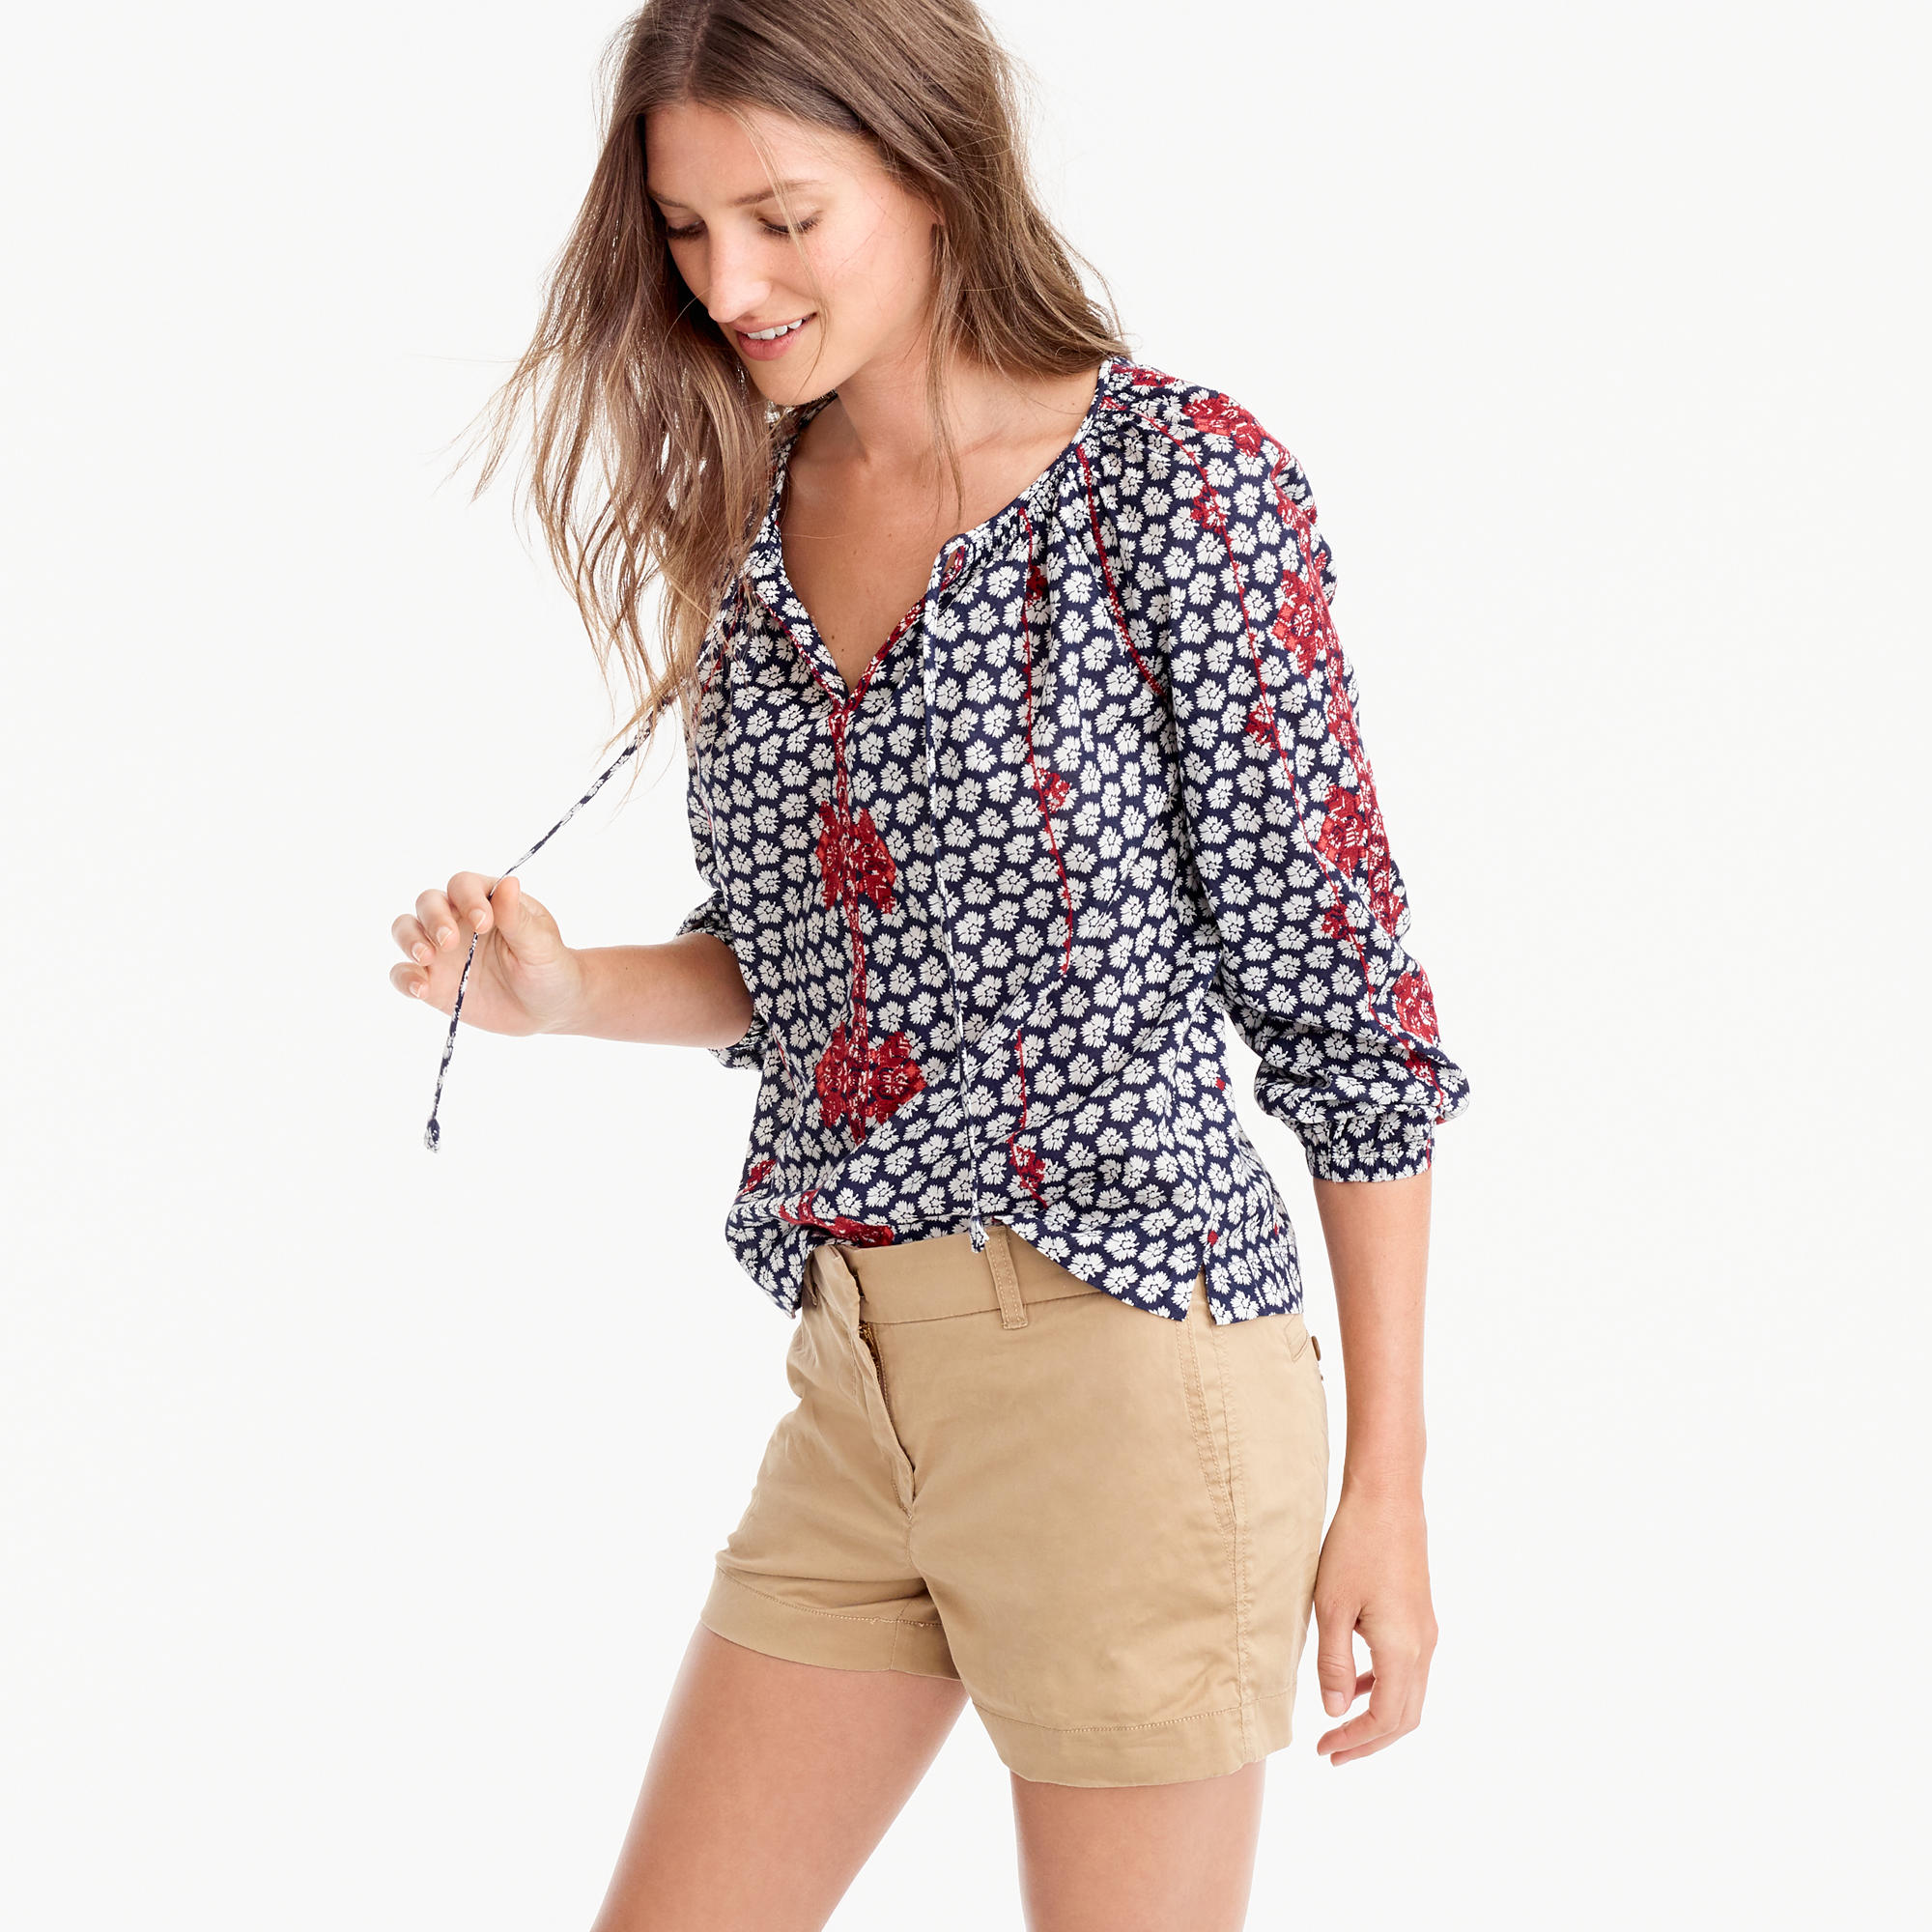 Women's Shirts, Tops & Blouses | J.Crew